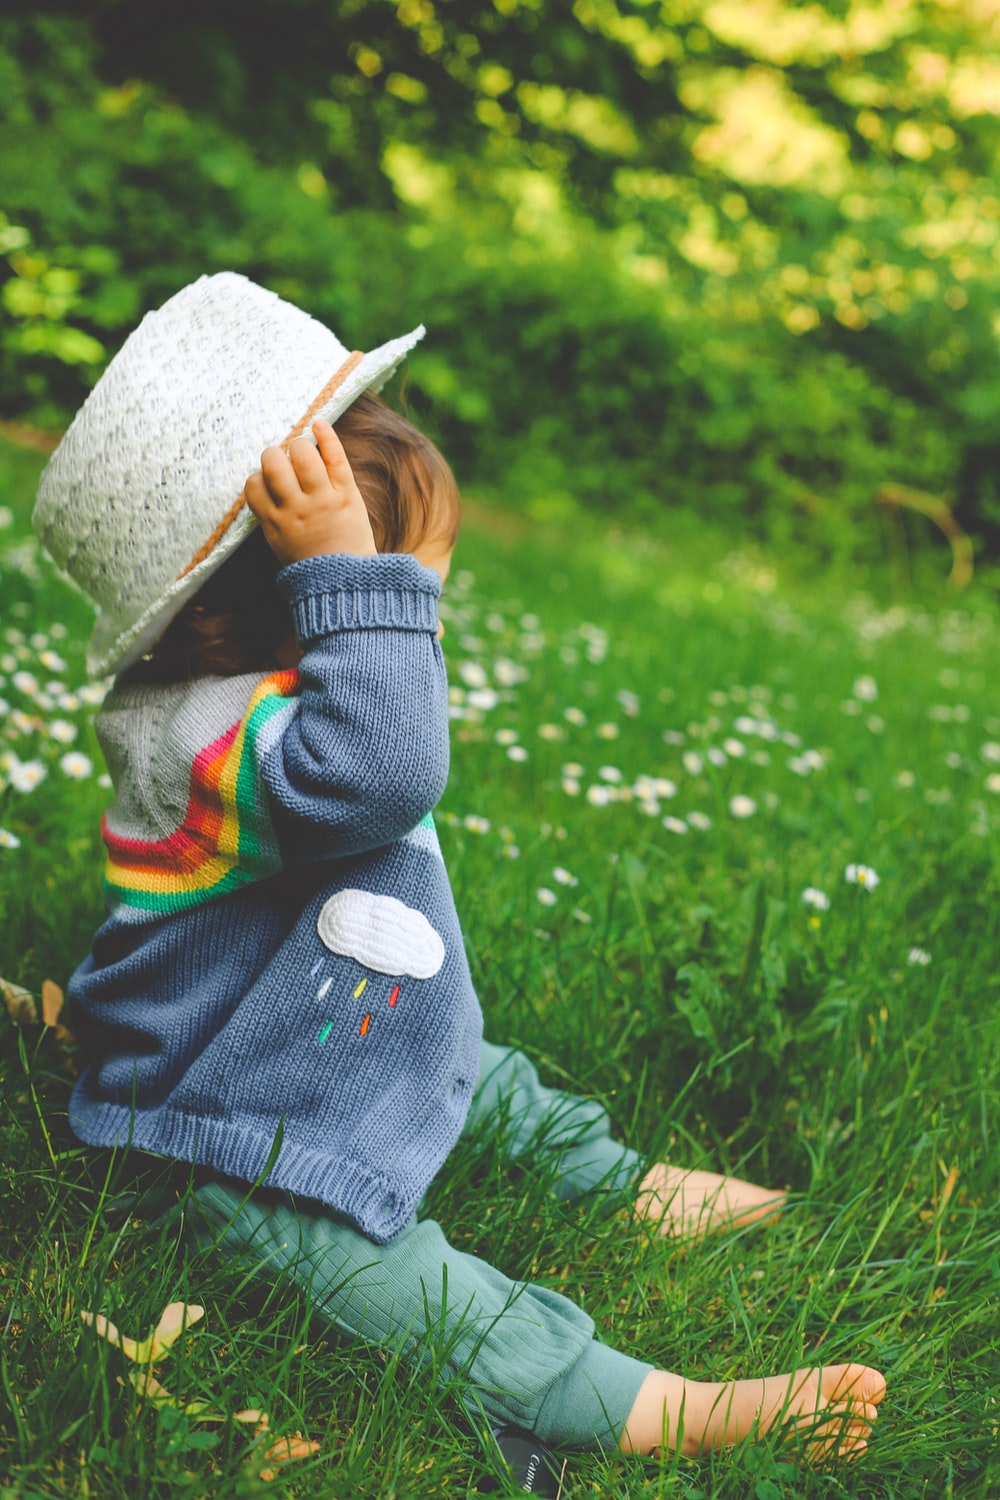 child in gray jacket and white hat standing on green grass field during daytime